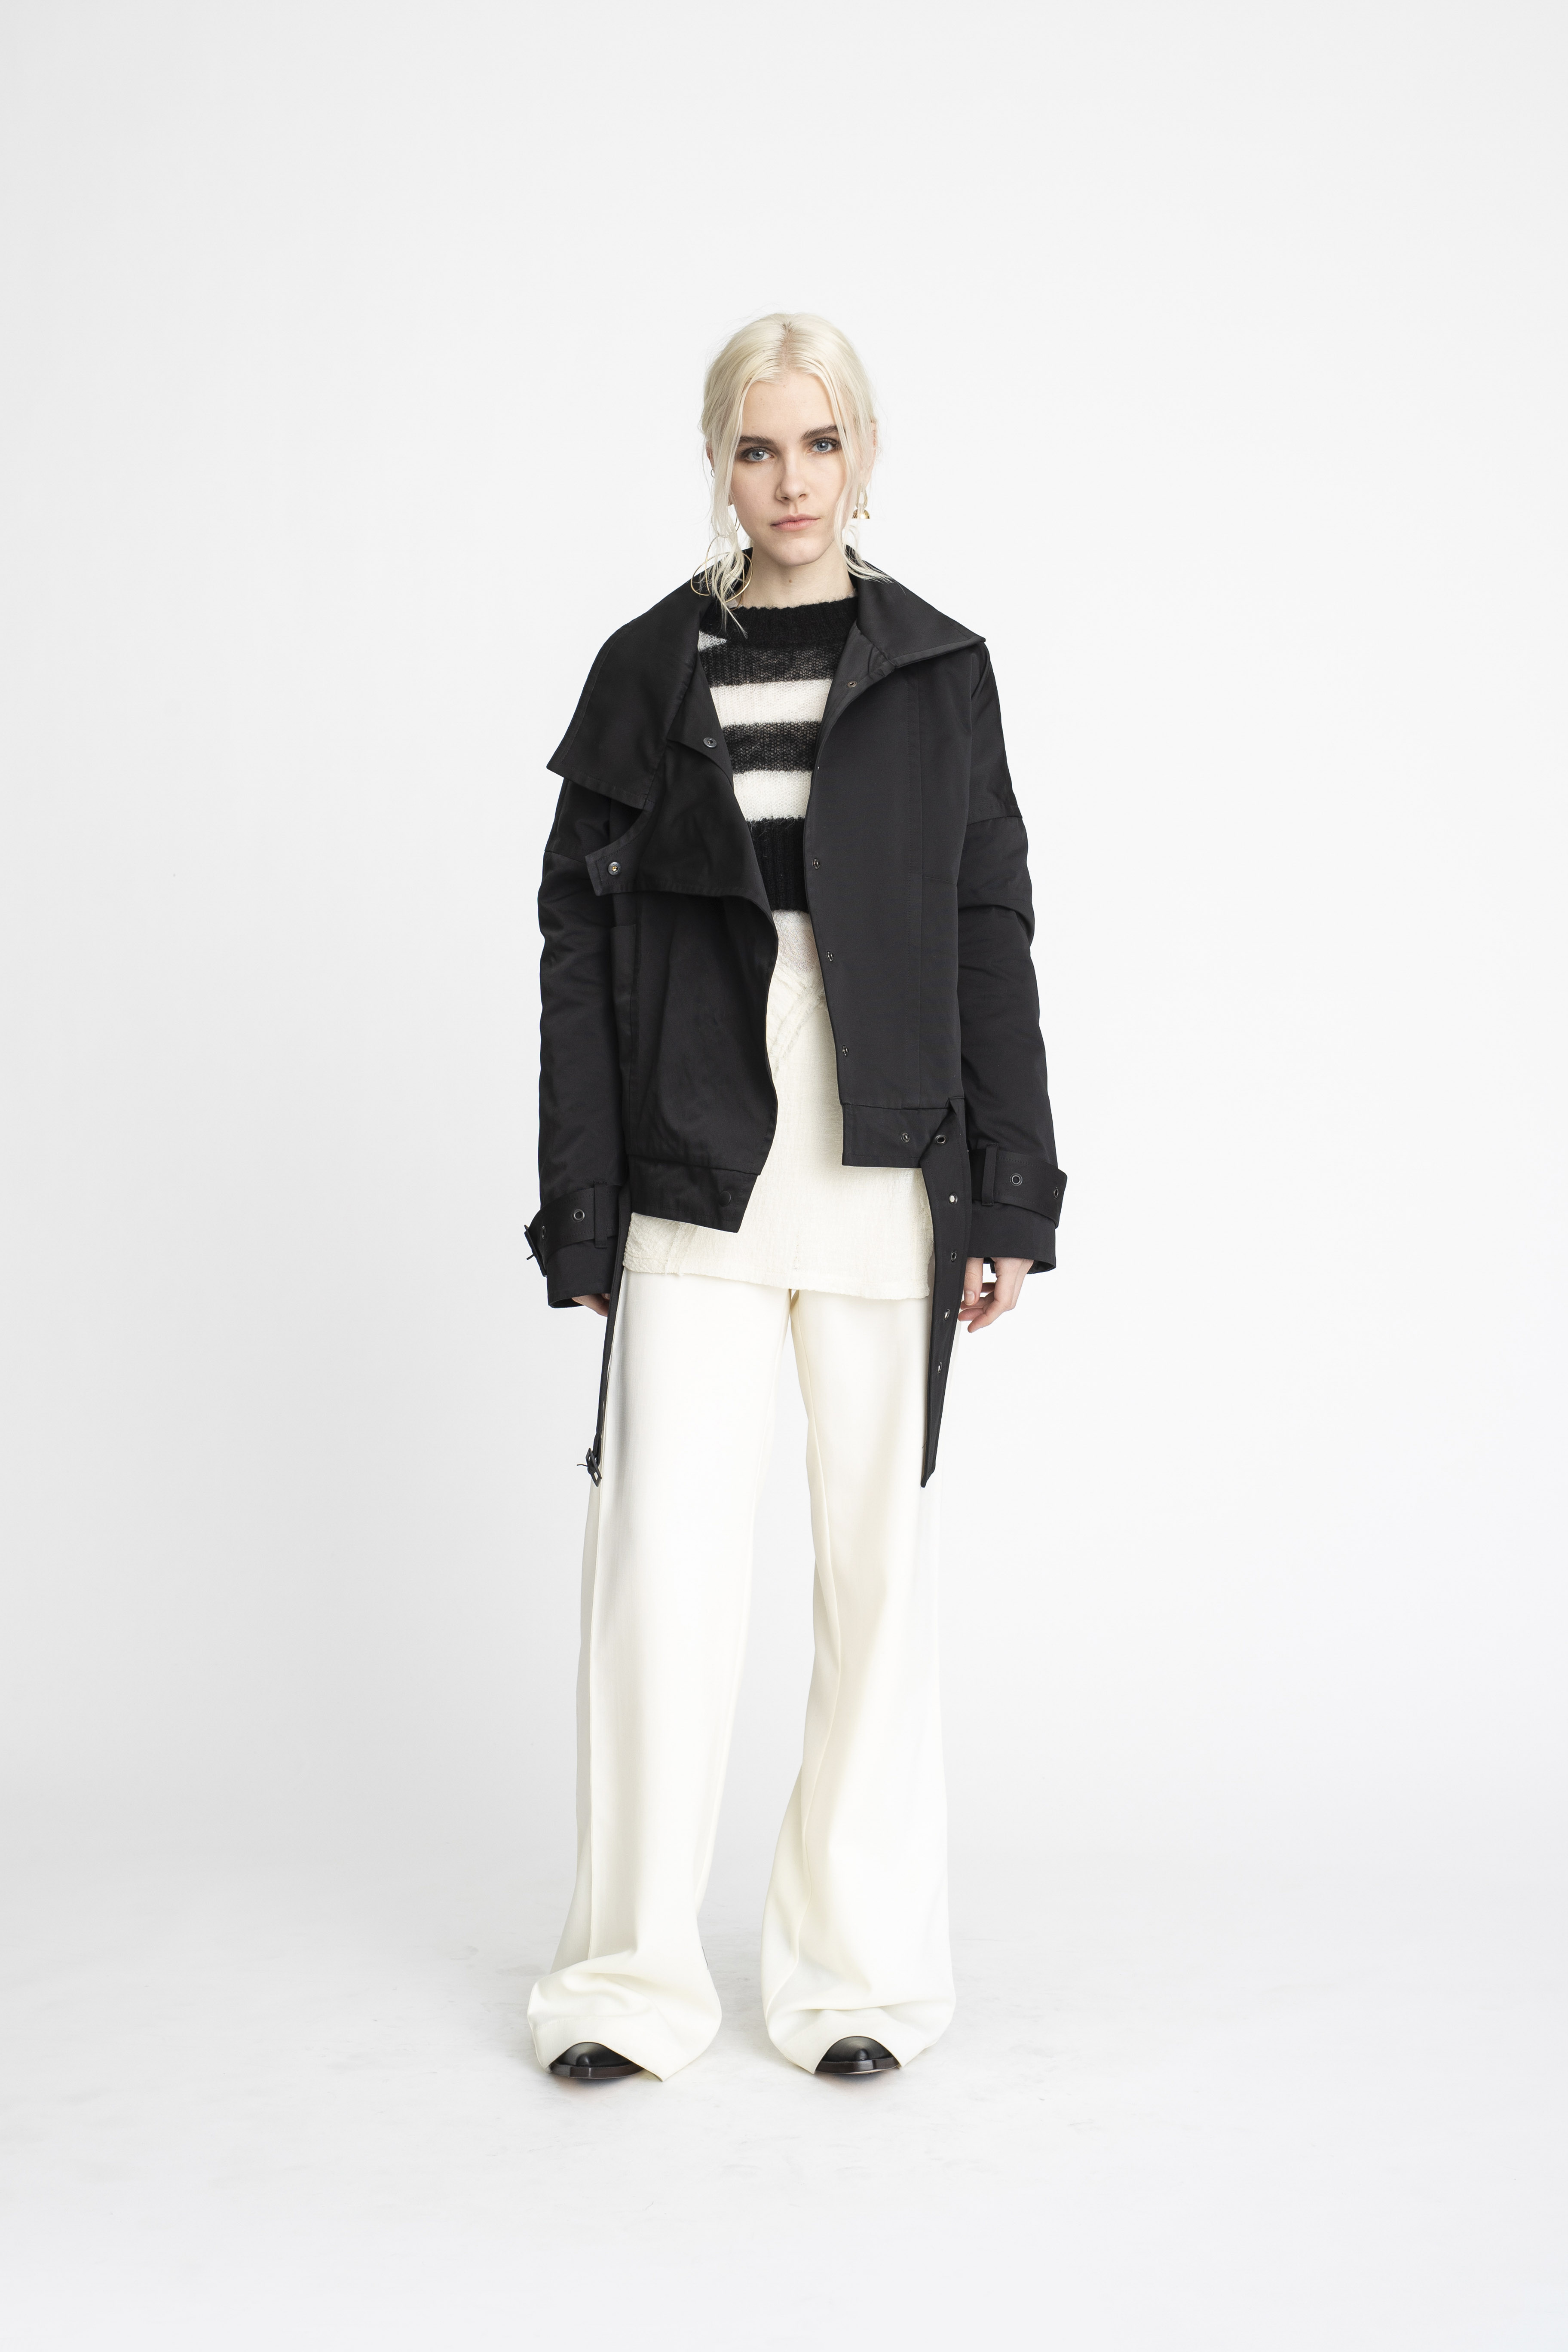 Abbreviate_Sweater_Mosaic-Tunic_Panelled-Joust-Pant_Providence-Coat_TaylorBoutique_AW19_L41_1017 2